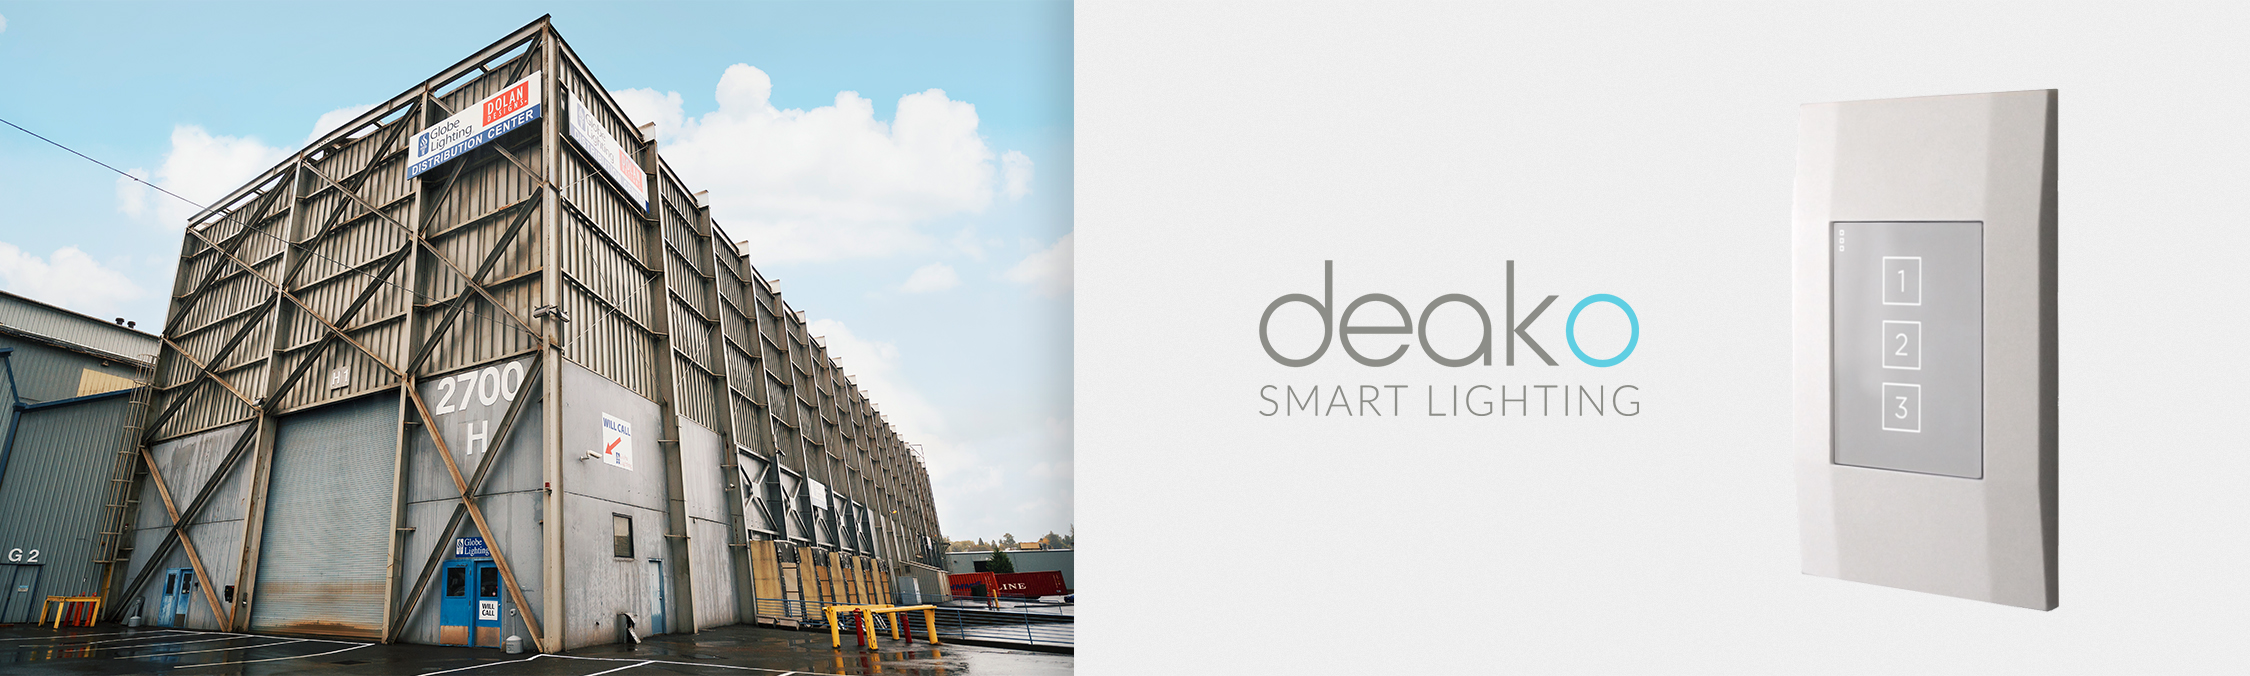 Deako Smart Lighting and Dolan NW establish partnership